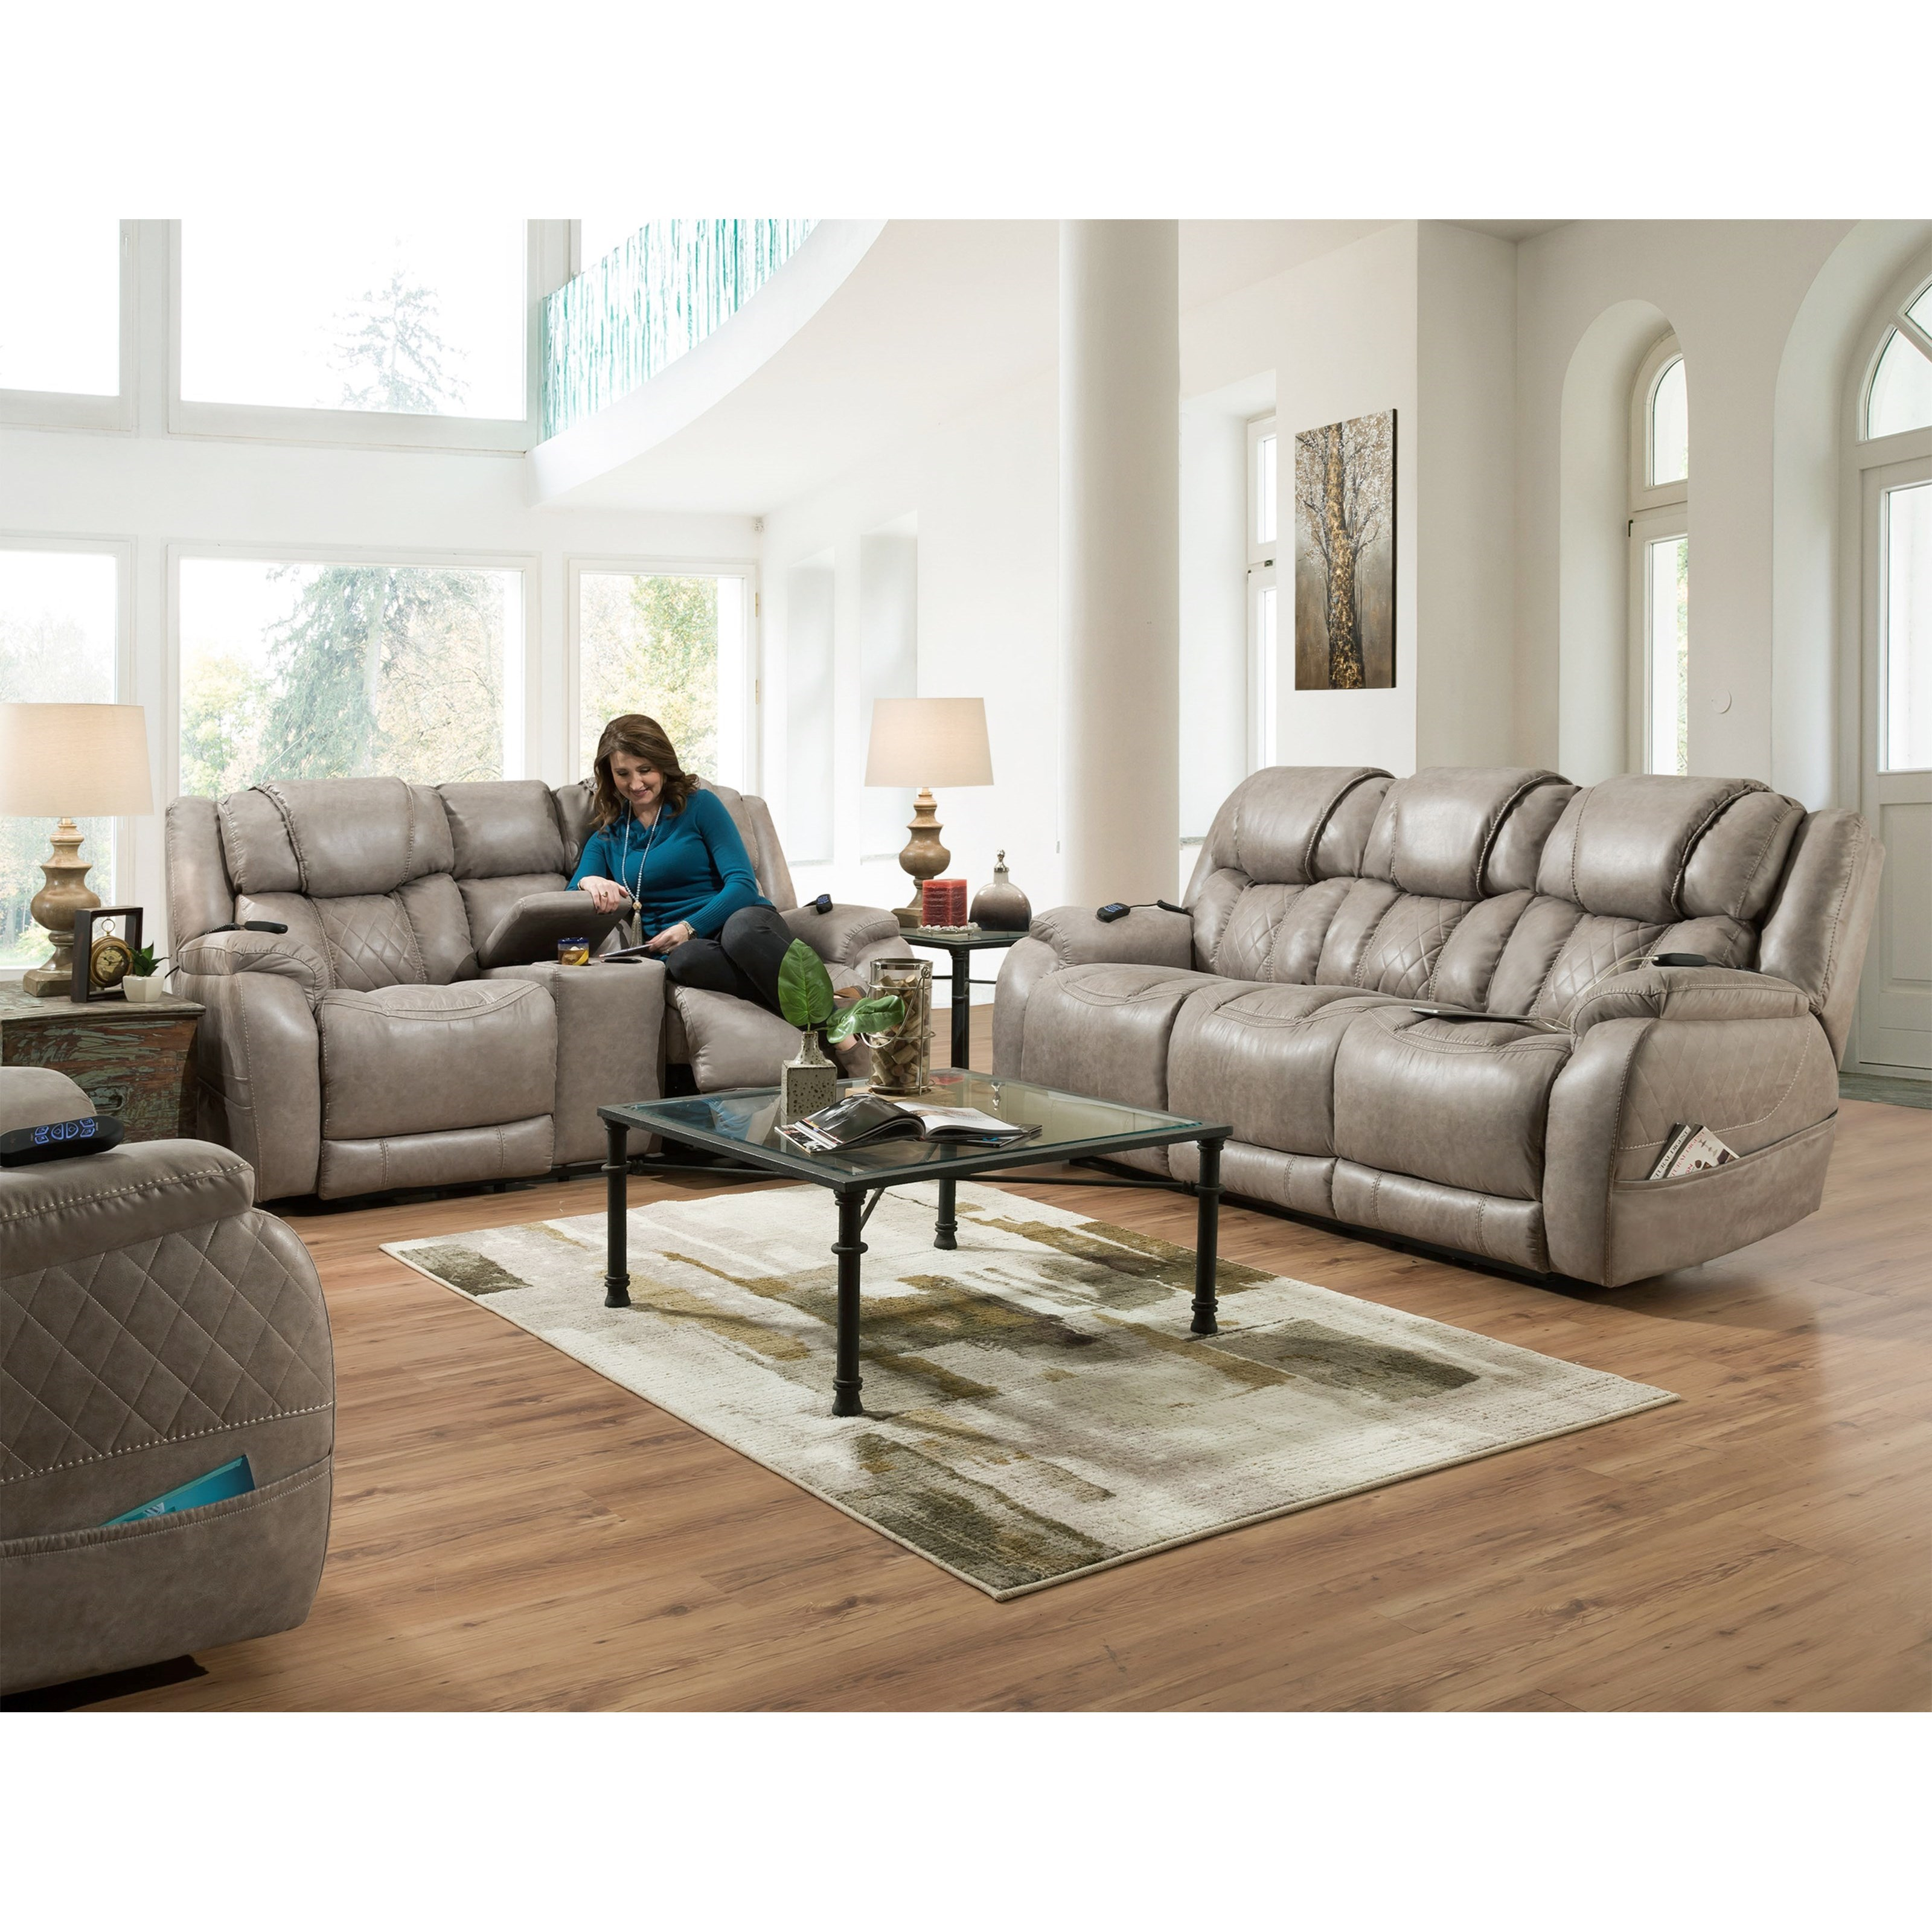 174 Reclining Living Room Group at Prime Brothers Furniture